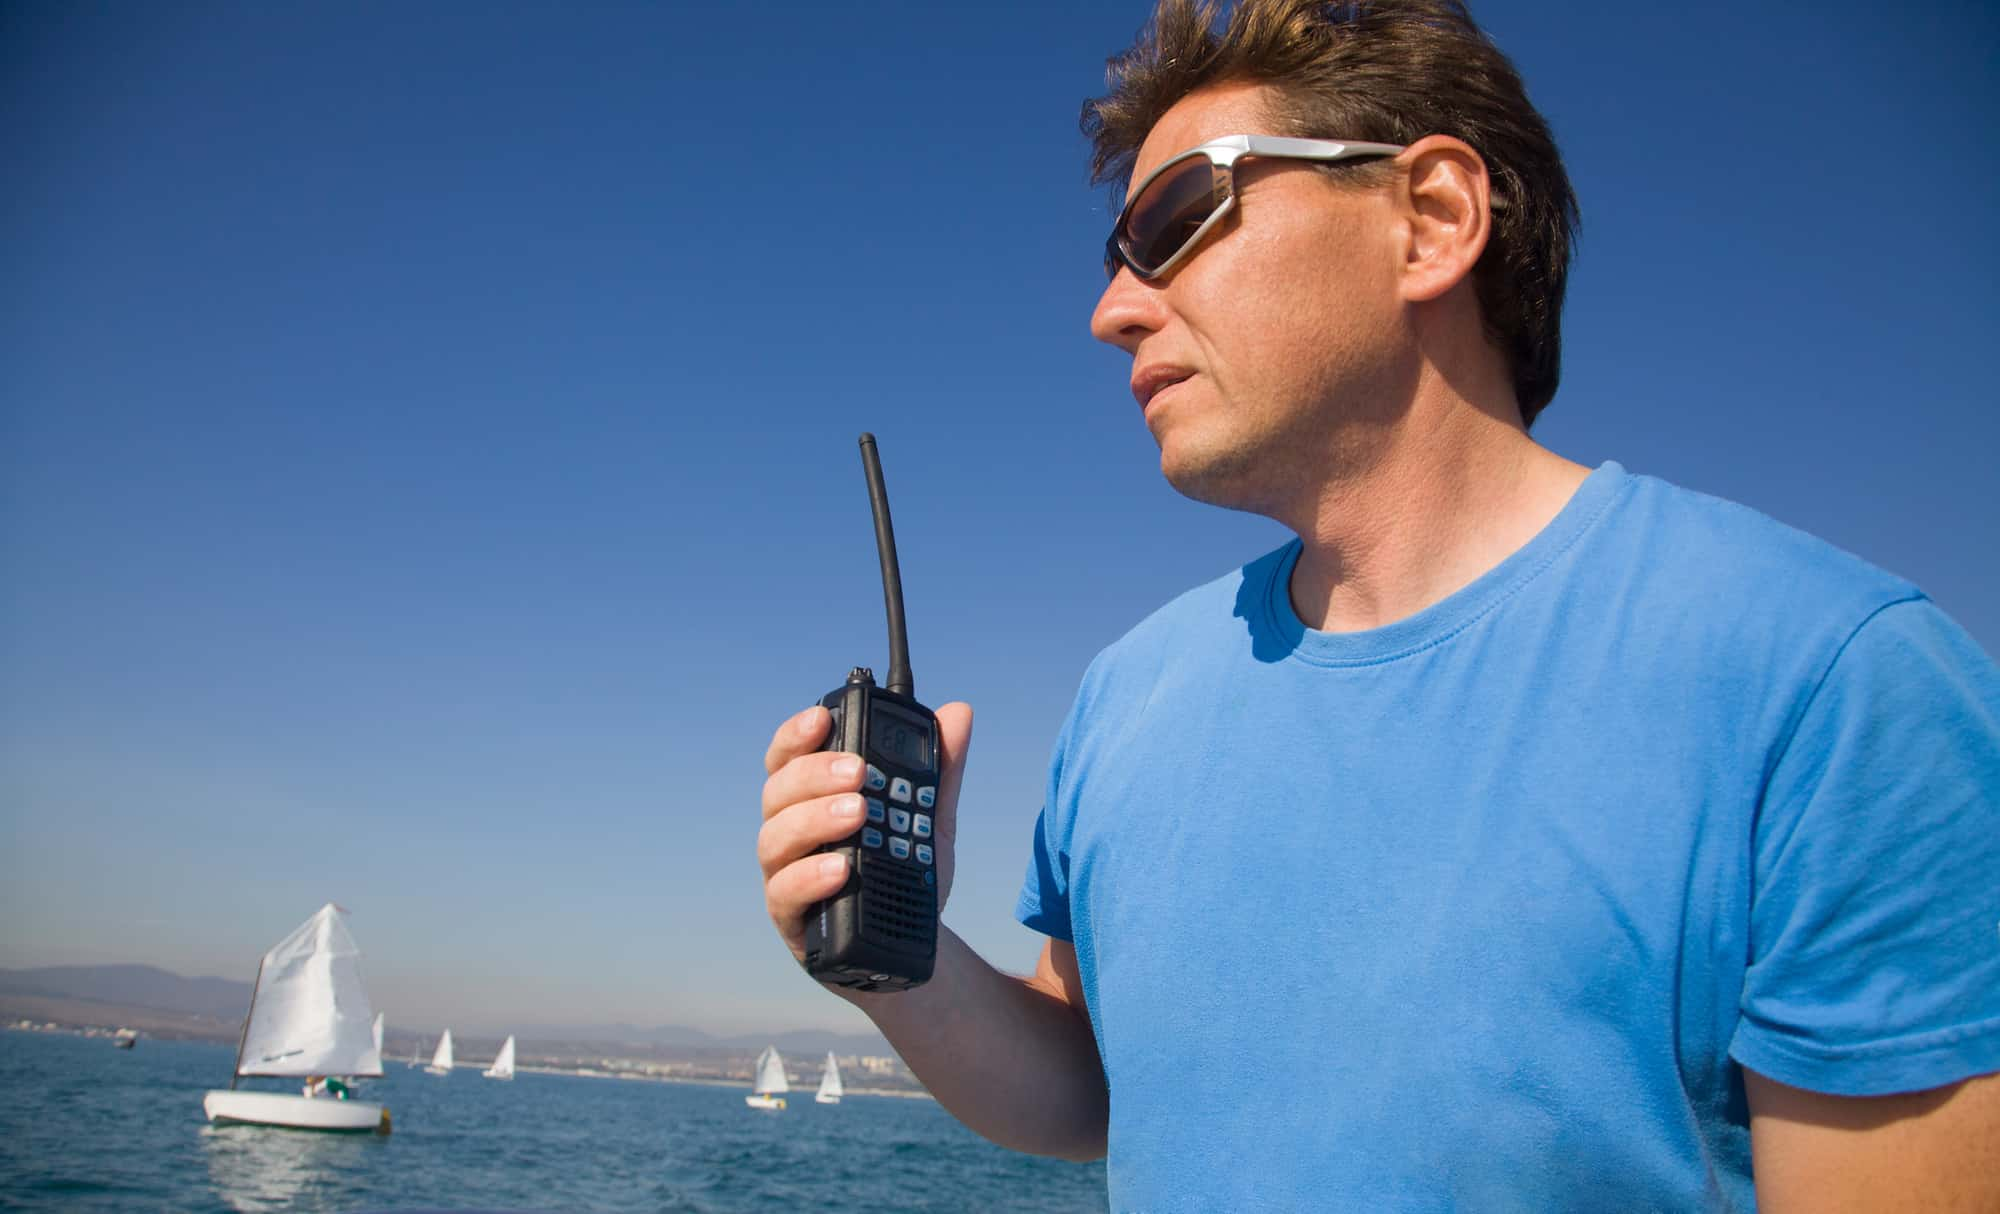 some man with walkie-talkie on the background of the sea with sails